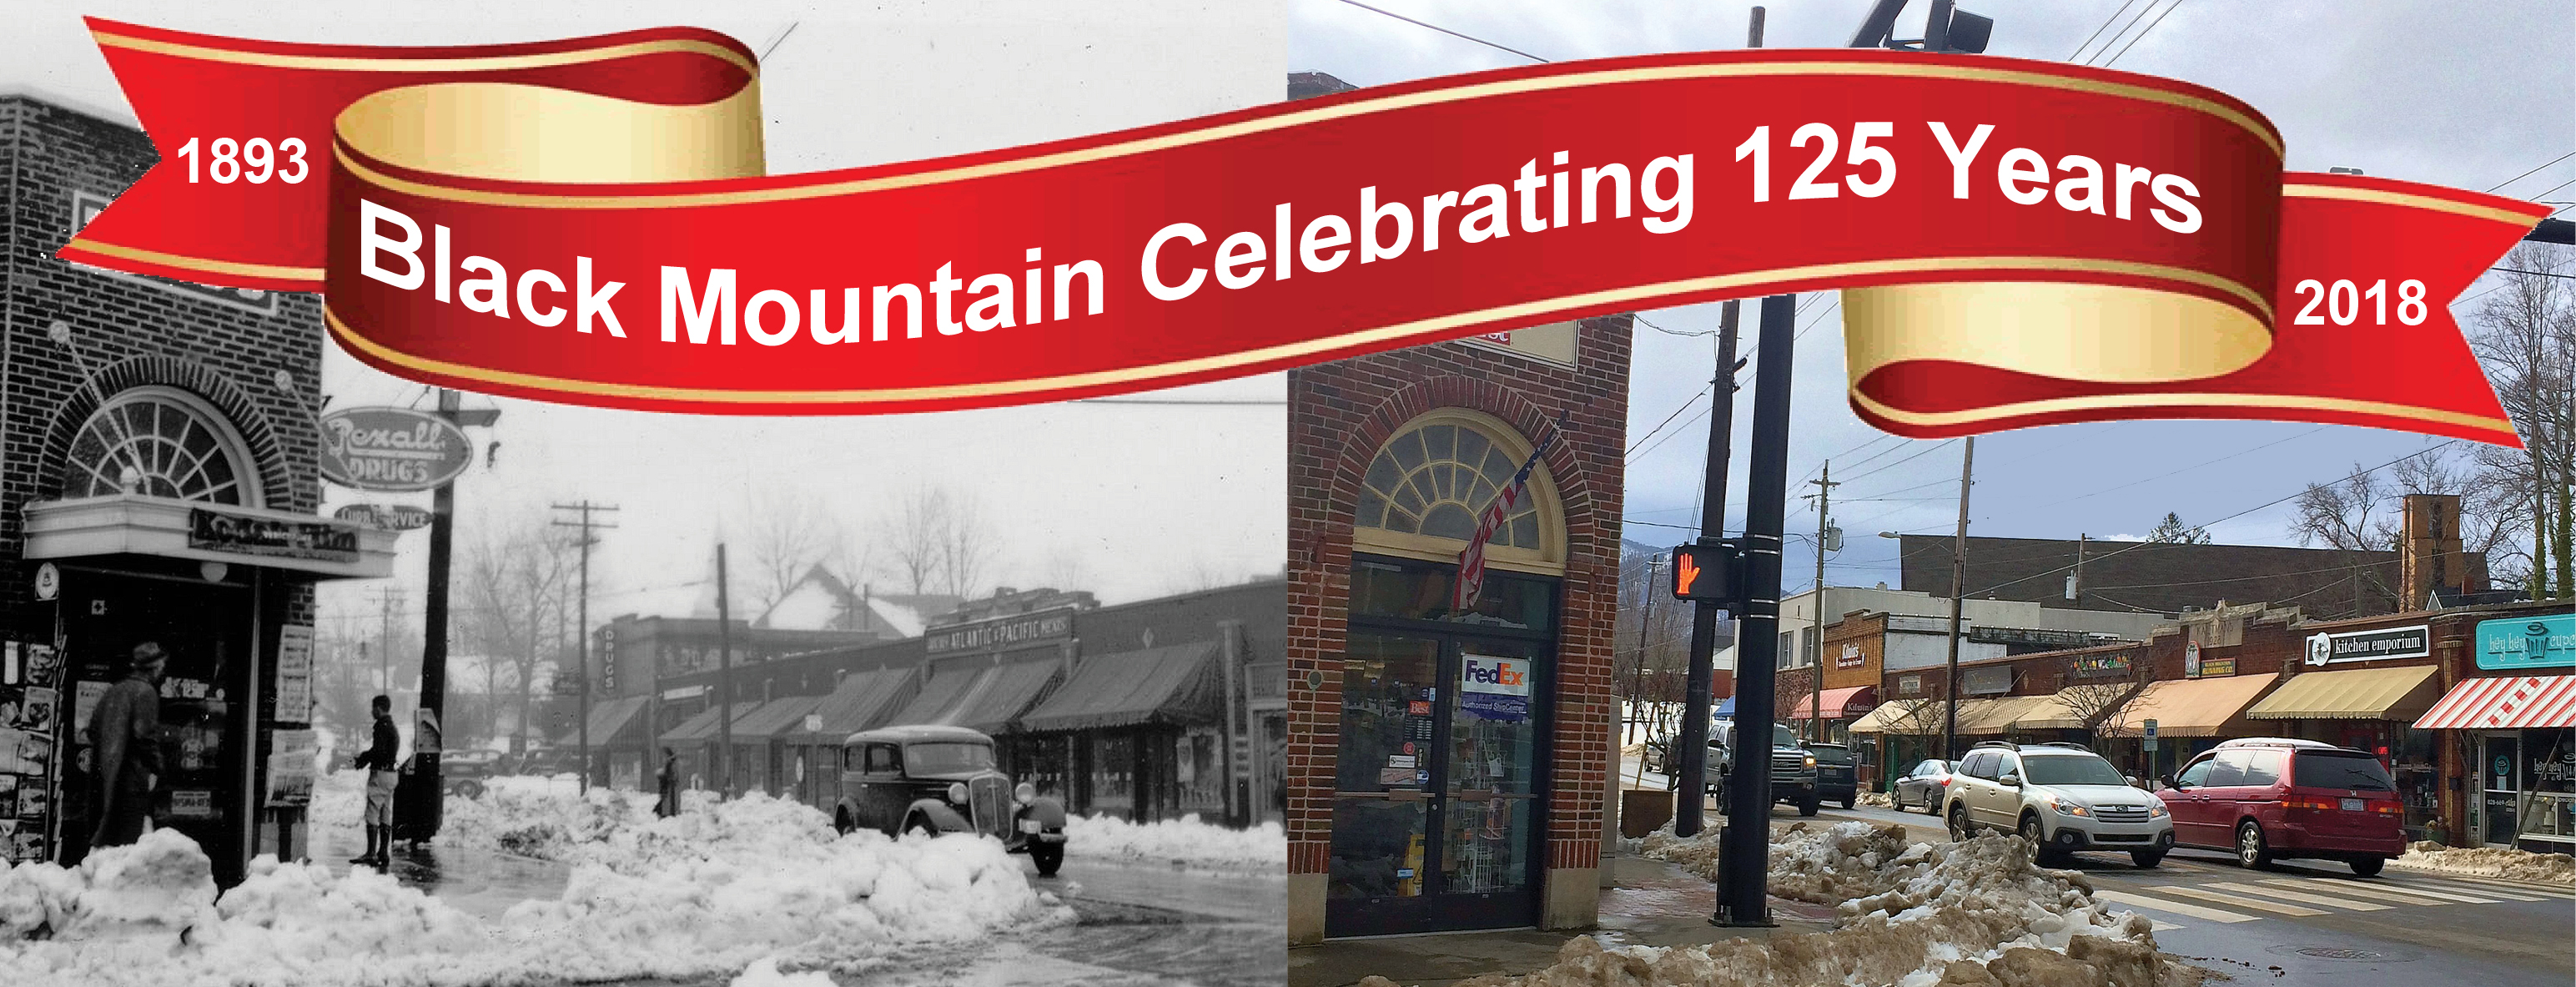 Black Mountain Celebrates 125 Years